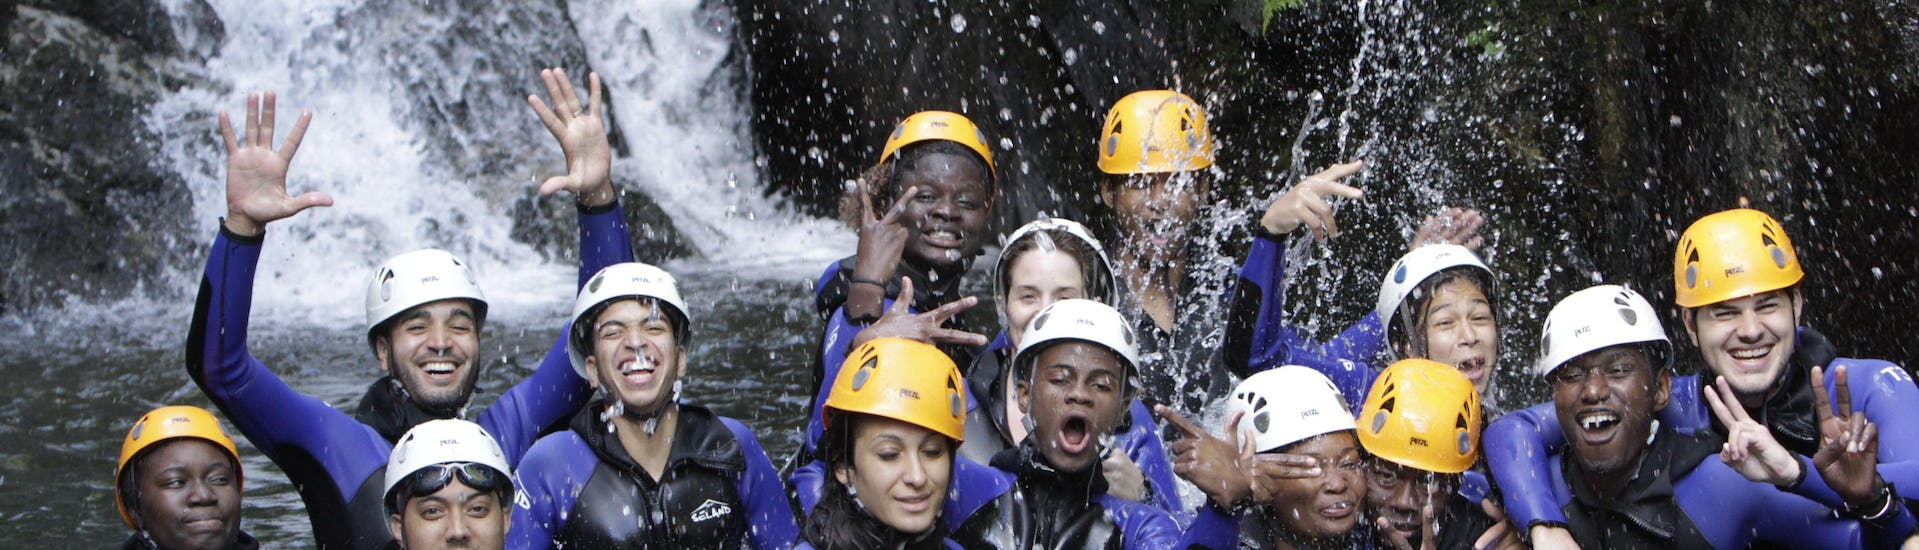 canyoning-for-everyone-groups-8-ppl-upper-besorgues-geo-canyon-hero